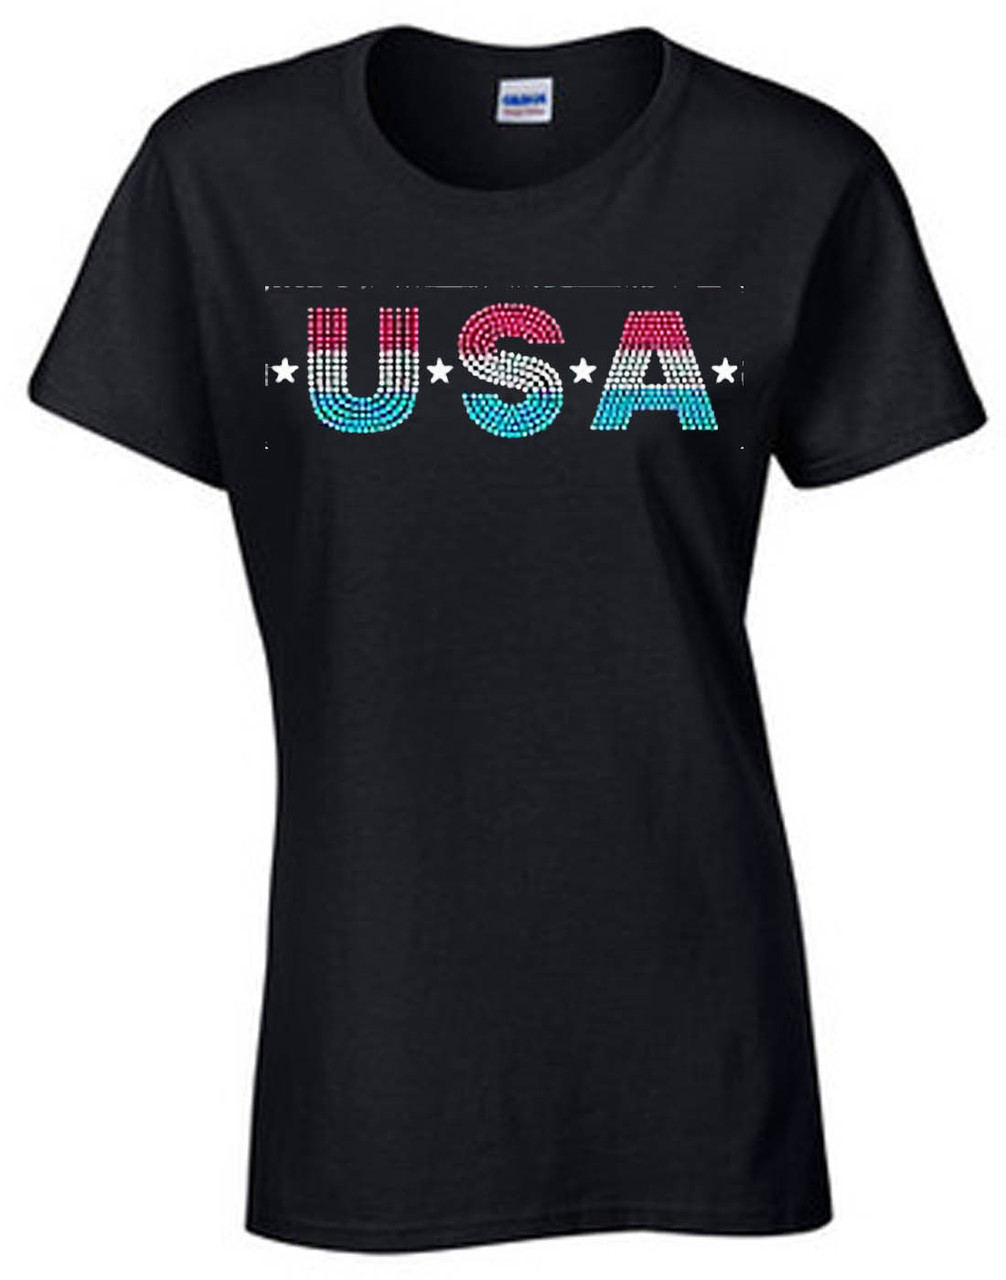 USA Glitter Women's Short Sleeve T-Shirt